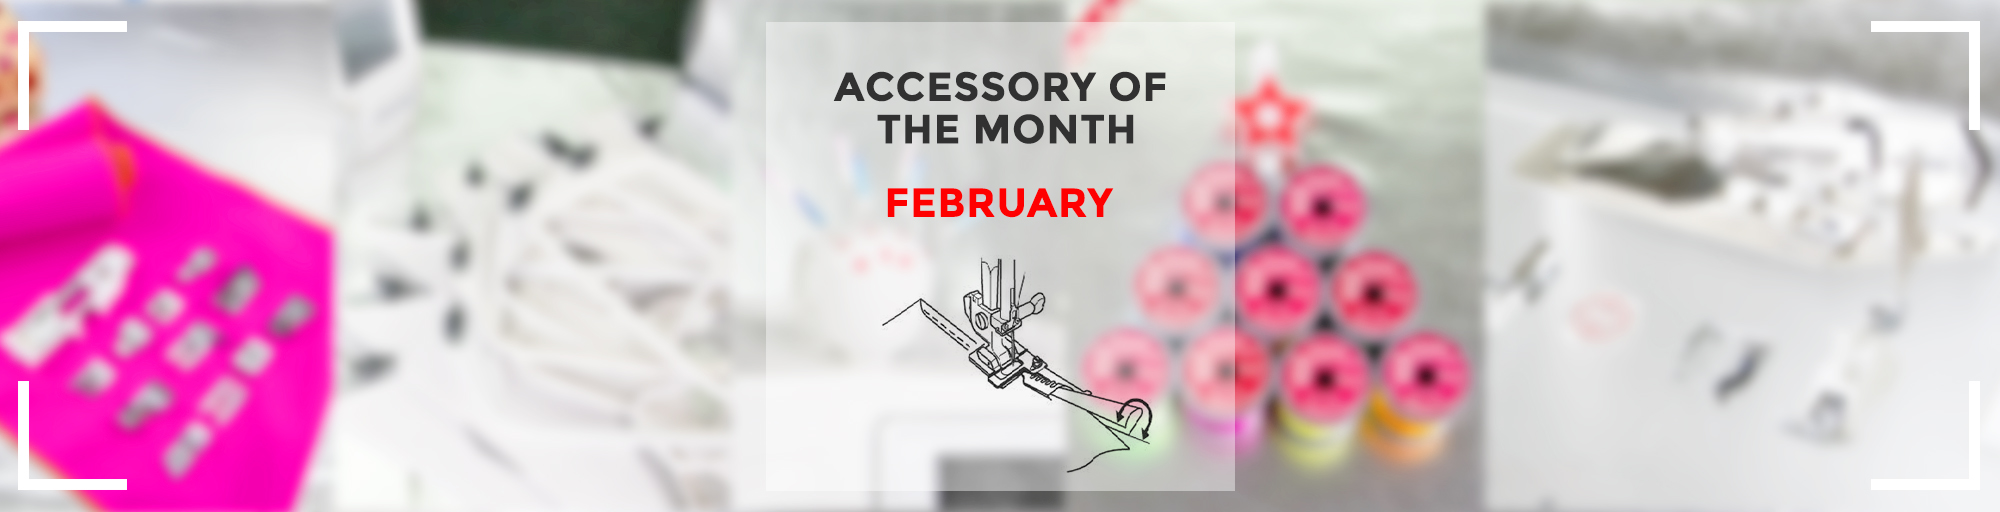 Accessory of the month feb